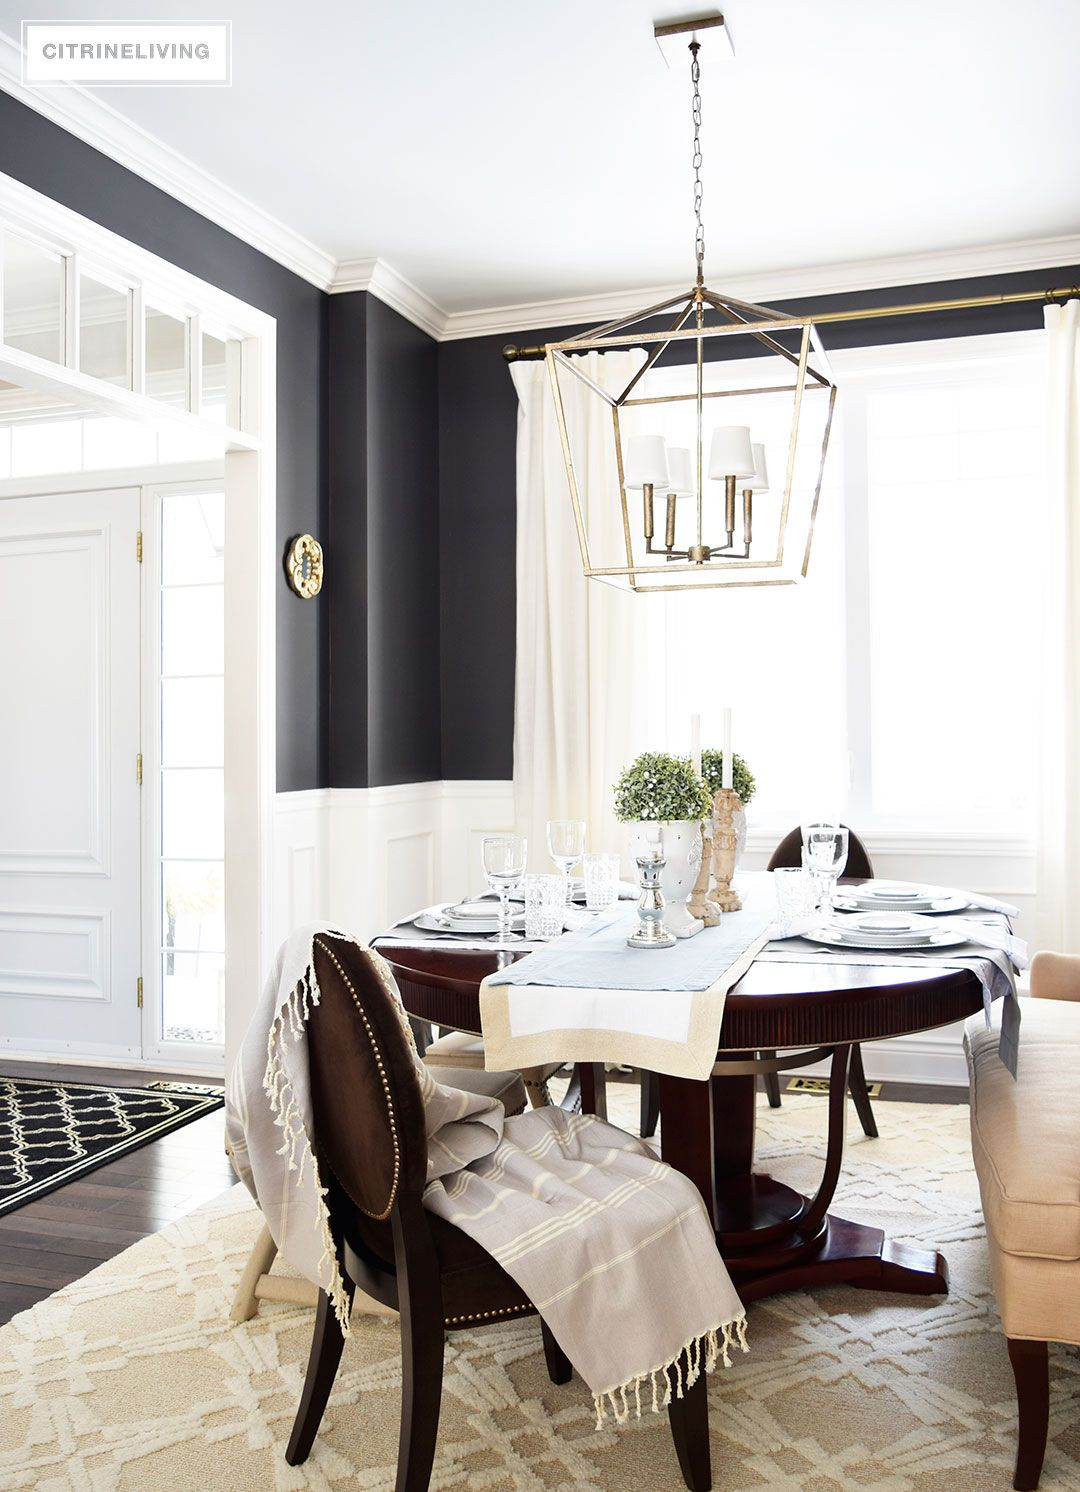 A Lantern Style Chandelier Gets An Elegant Update With The Addition Of White Shades